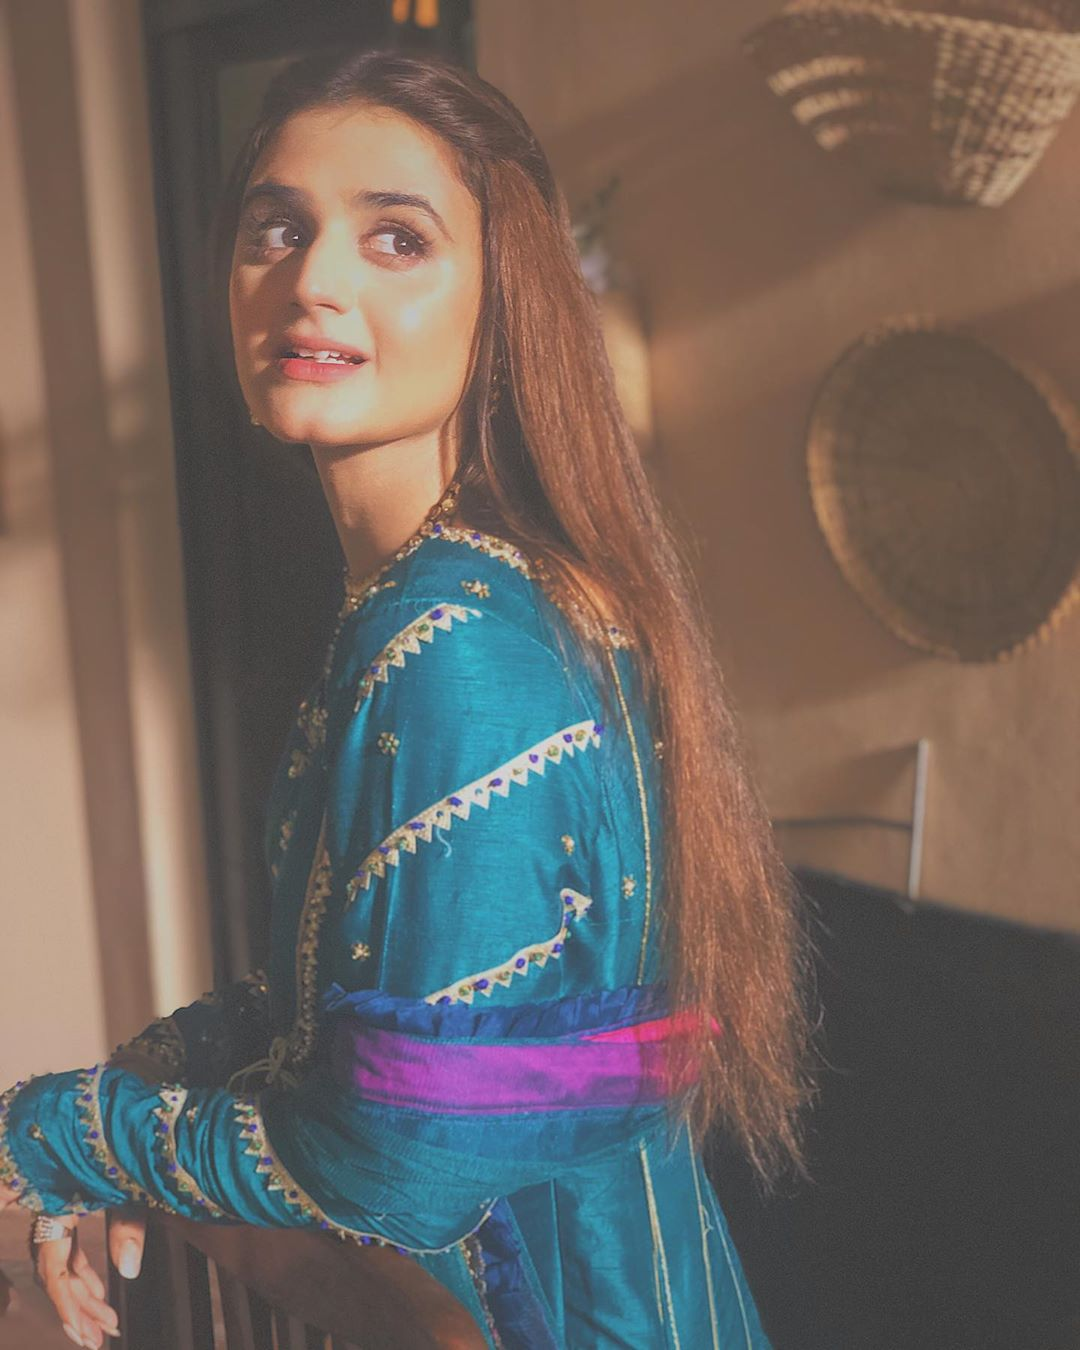 New Awesome Pictures of Actress Hira Mani